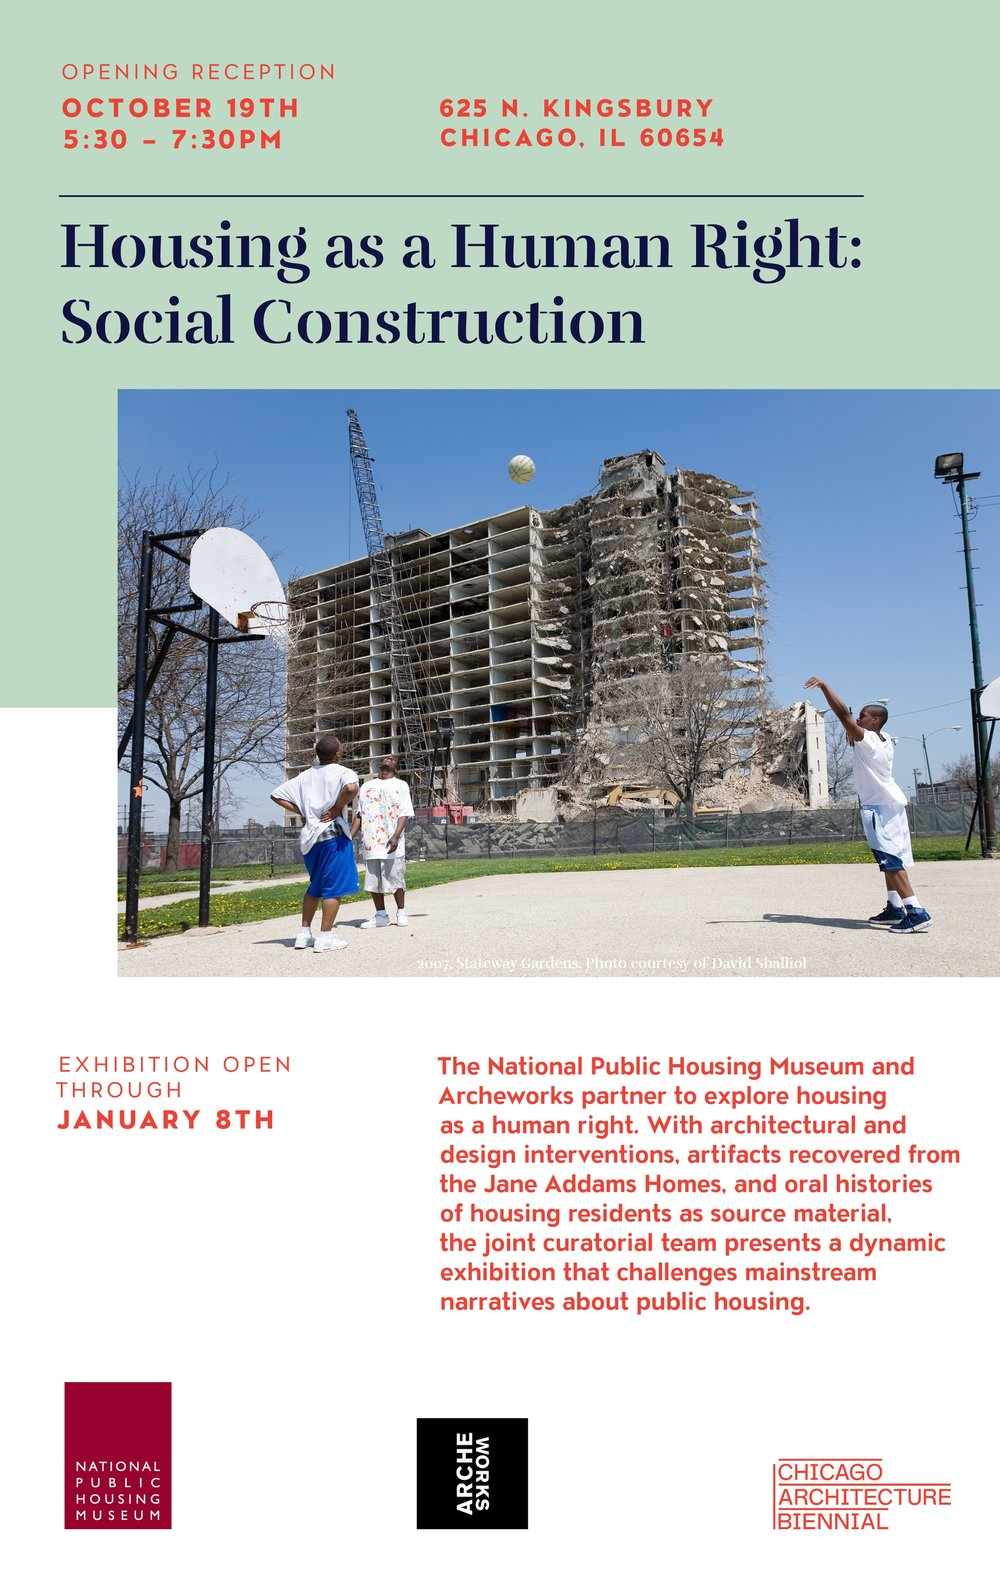 Opening Reception Housing as a Human Right - Social Construction Image.jpg